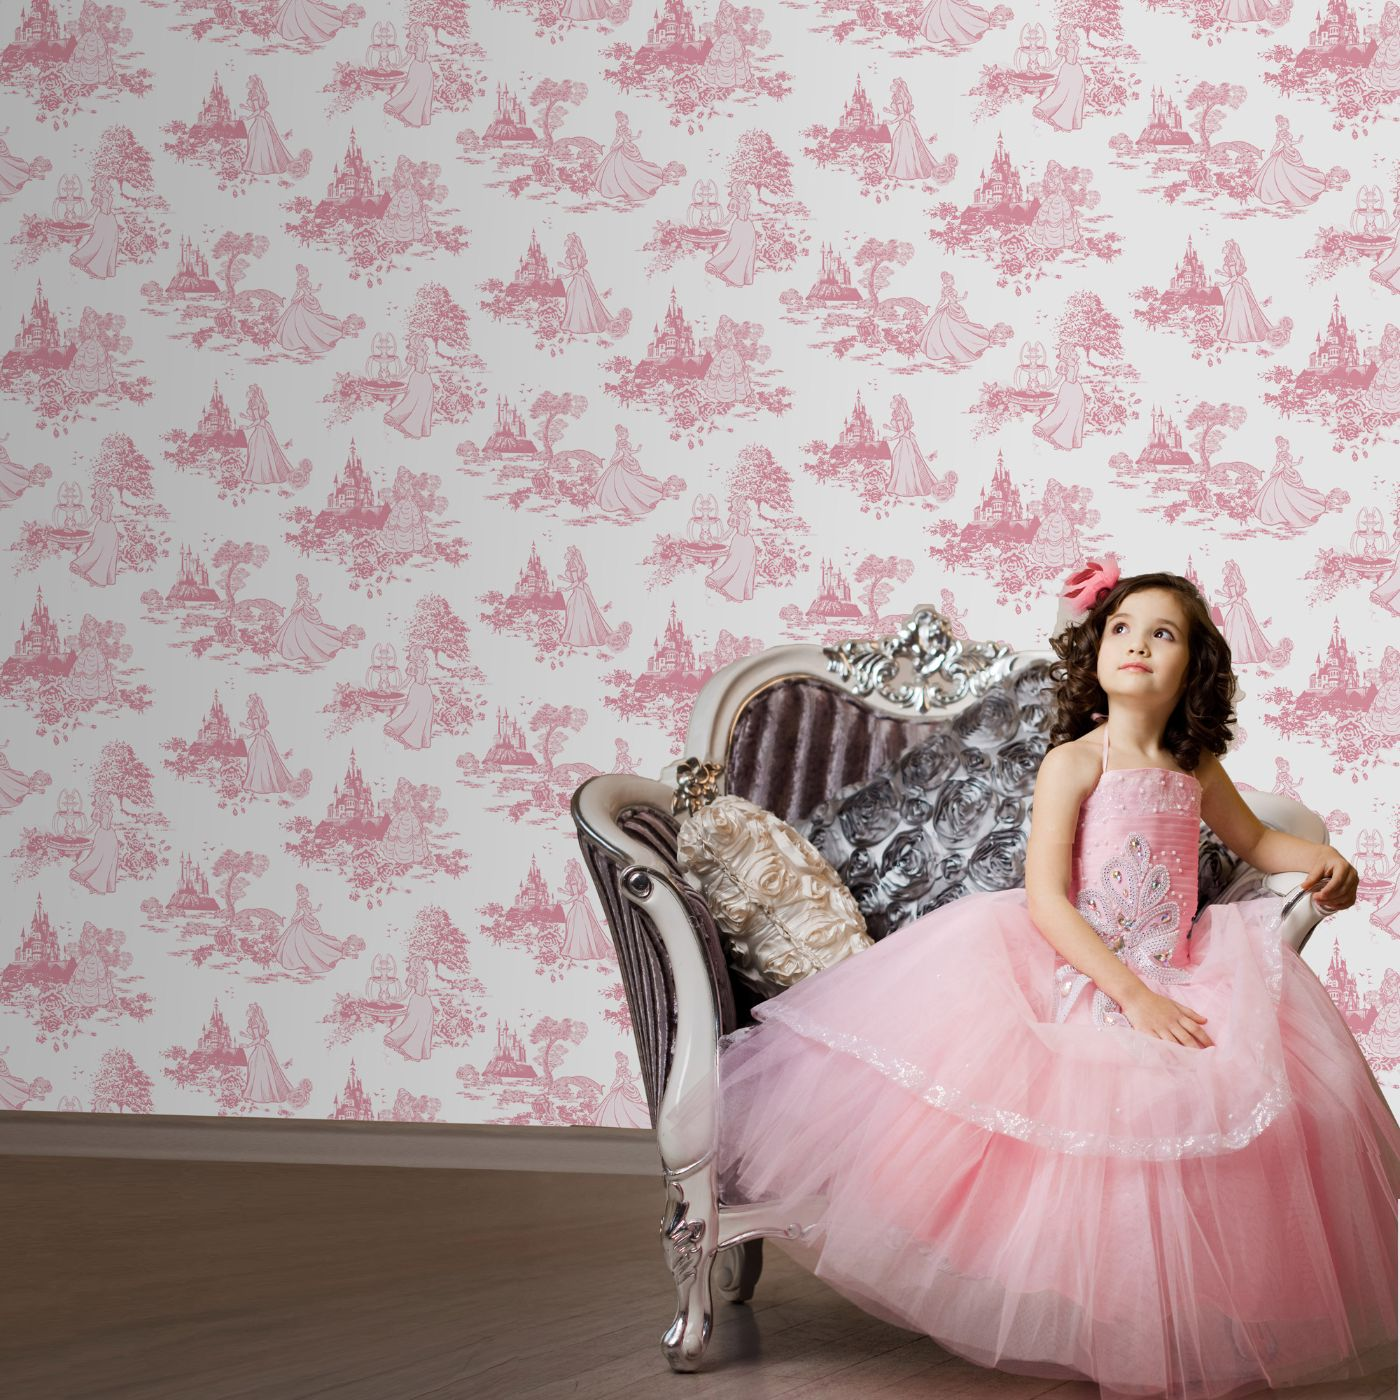 Disney Princess Girls Toile Print Pink Wallpaper Bedroom